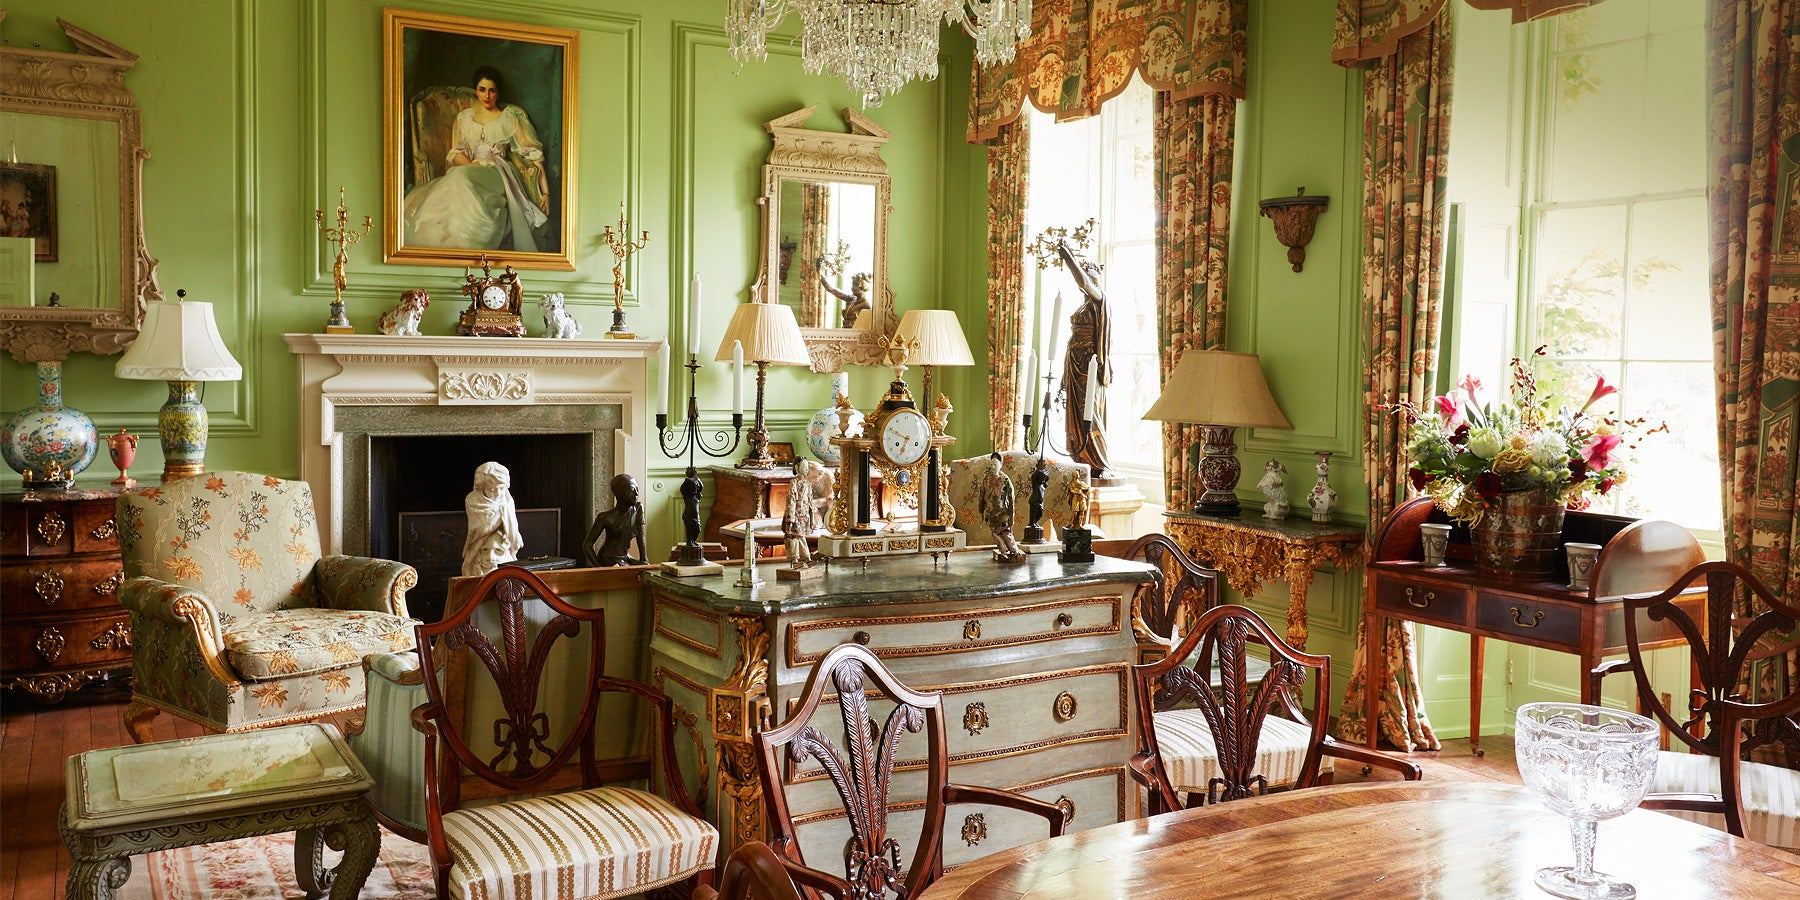 Amazing Shopping For Antiques In A British Royal Residence